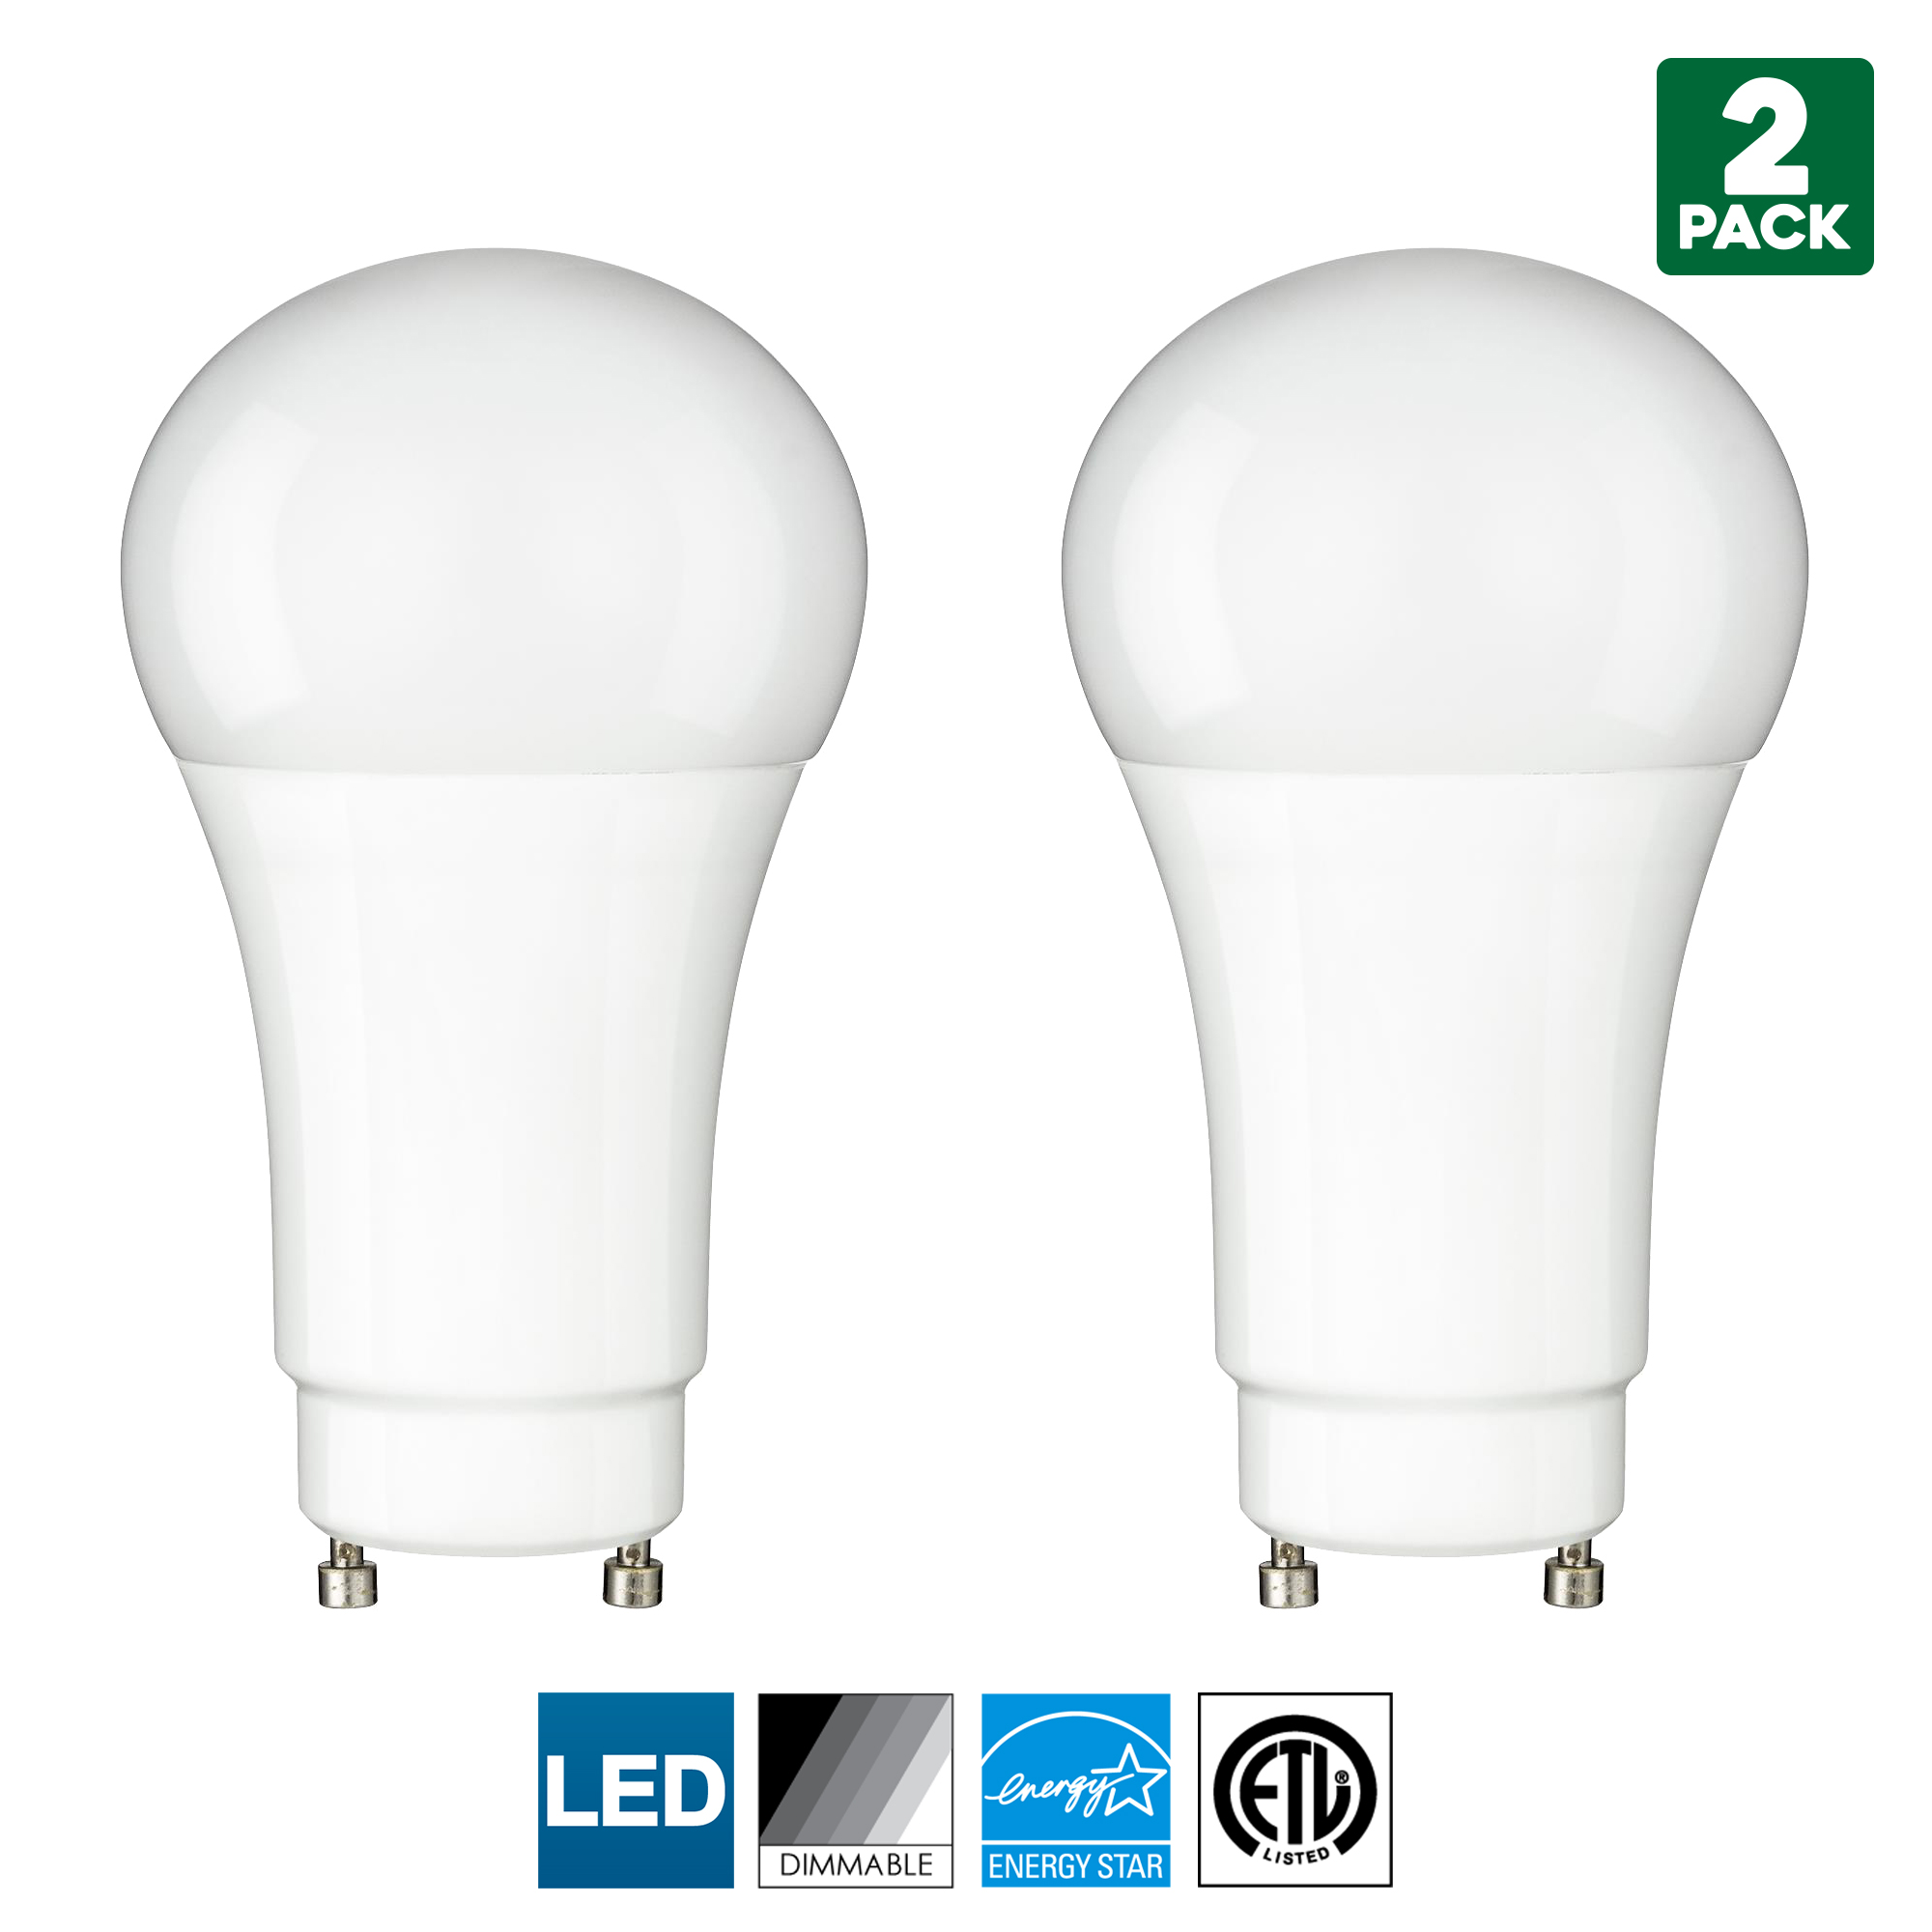 2 Pack Sunlite GU24 Base LED Bulb, Dimmable, 10 Watt (60 W Equivalent), CFL Replacement, 4000K Cool White, 800 Lumens, 15000 Hour Life Span